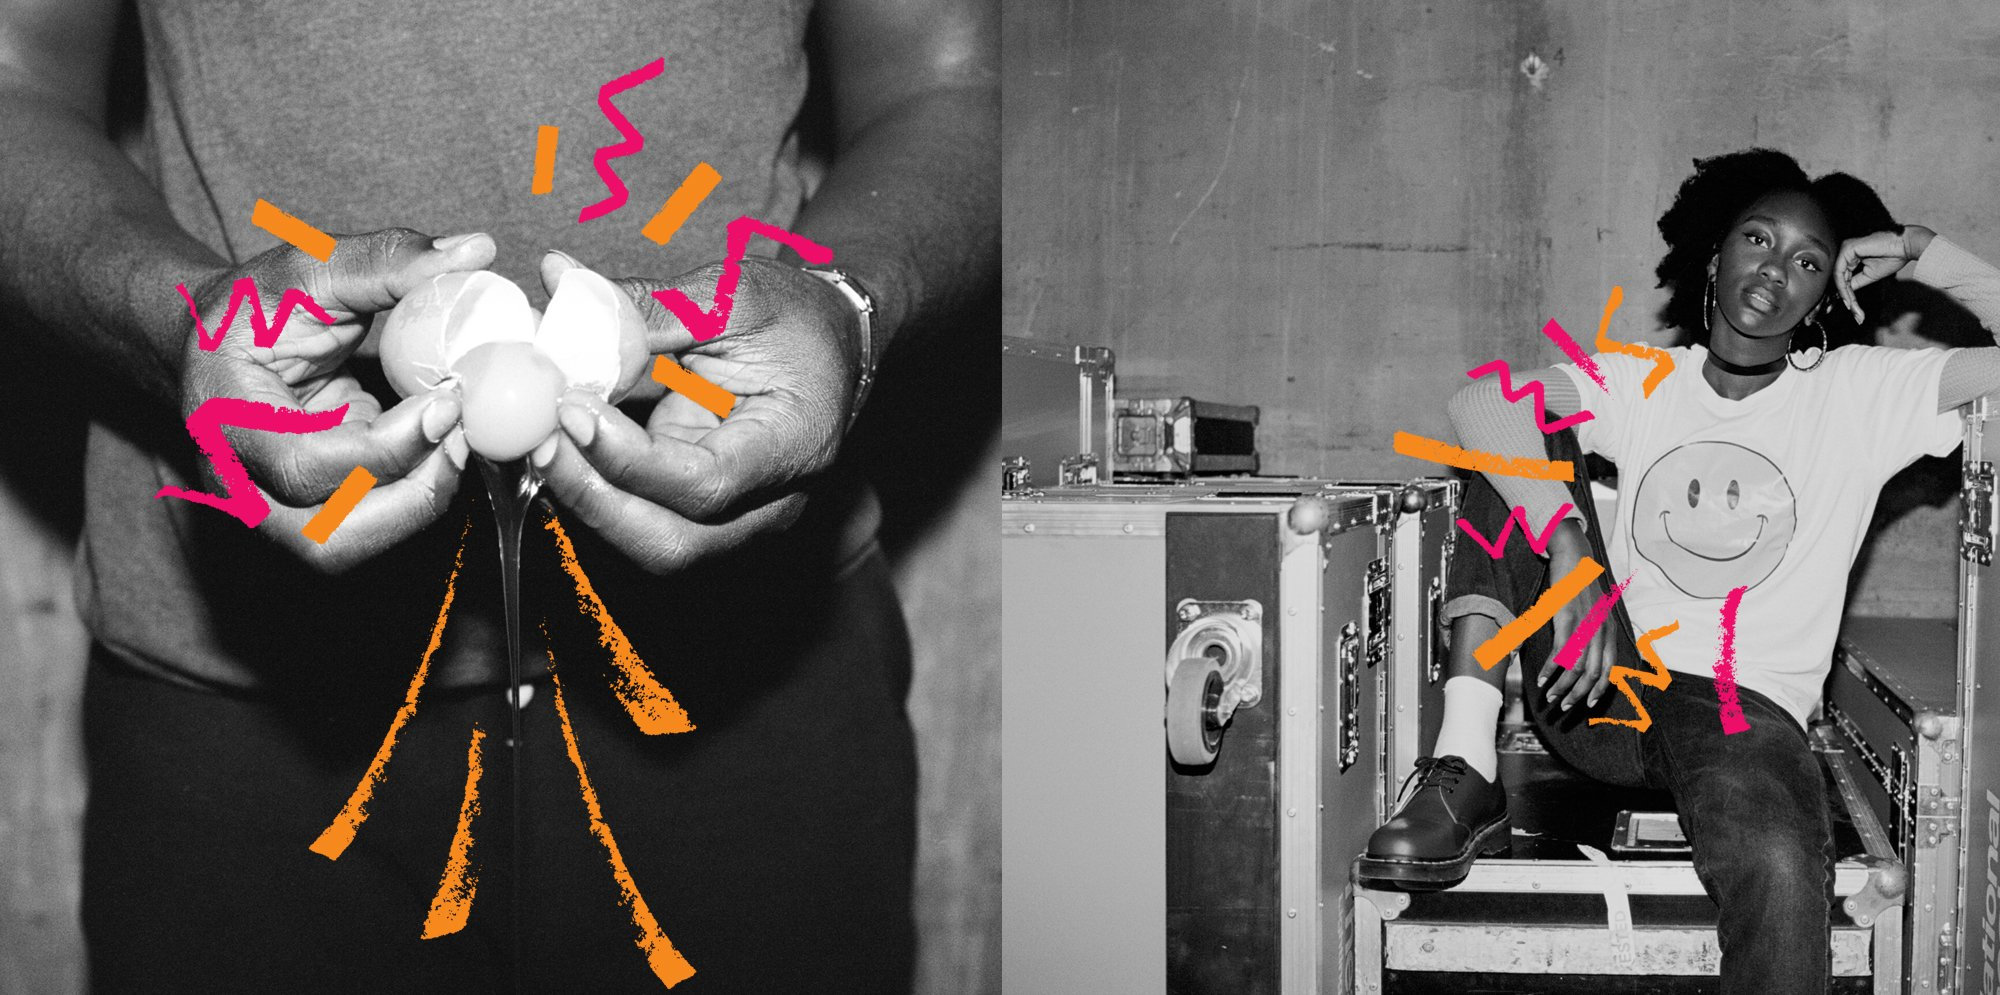 NT Connections 2 images: one of hands cracking an egg, and one of a woman looking melancholic, wearing a t-shirt with a smiley from which graffiti marks explode